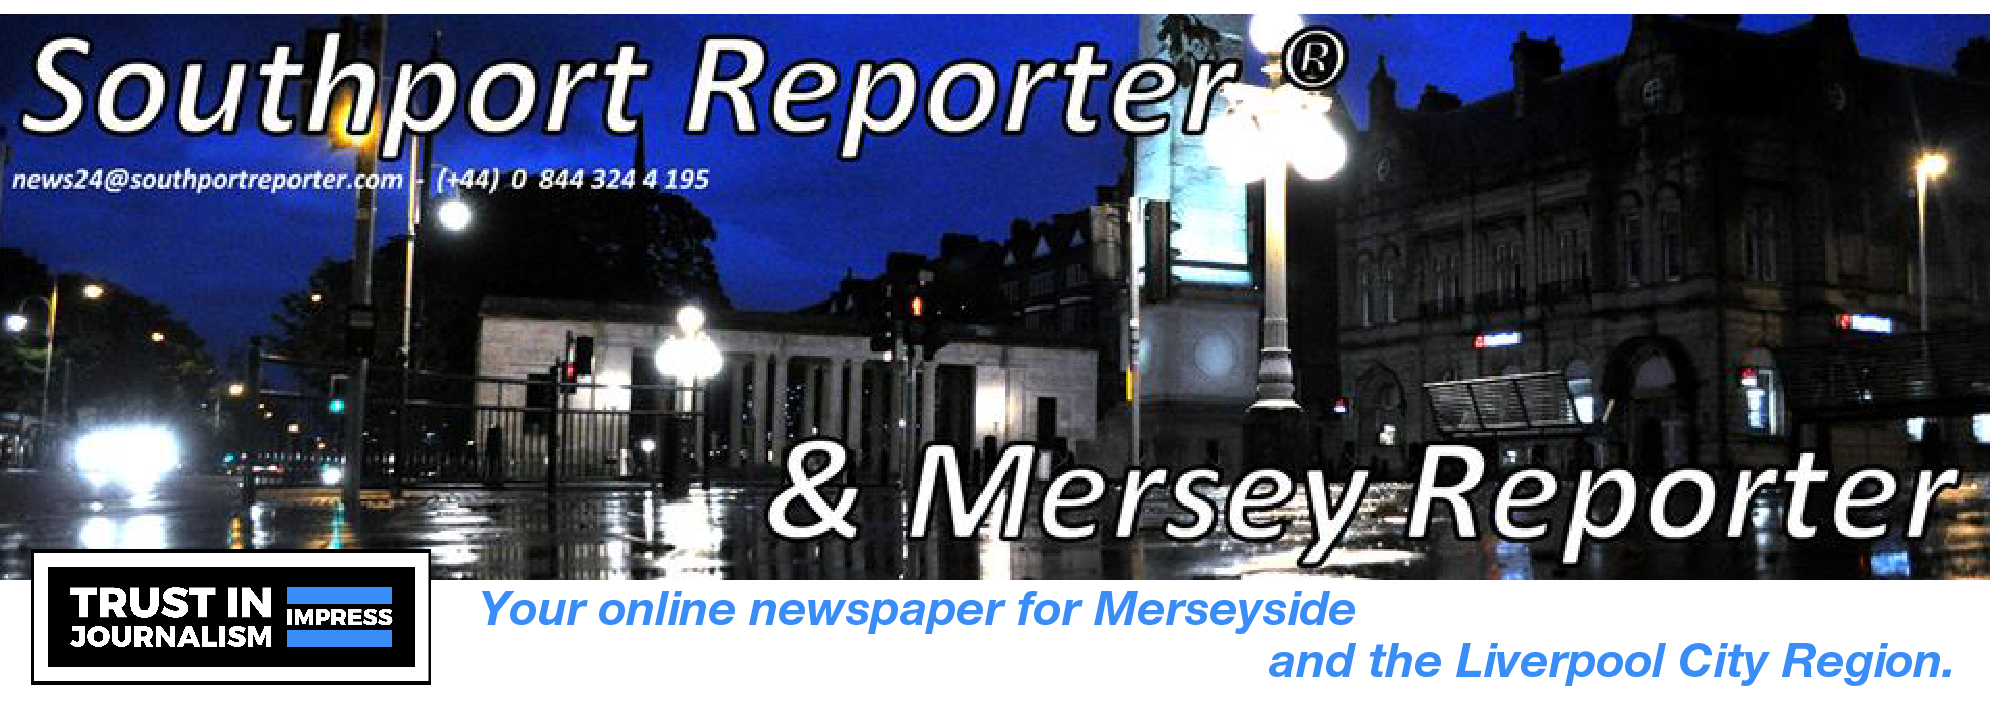 Southport Reporter - You local online newspaper for Merseyside and the Liverpool City Region.